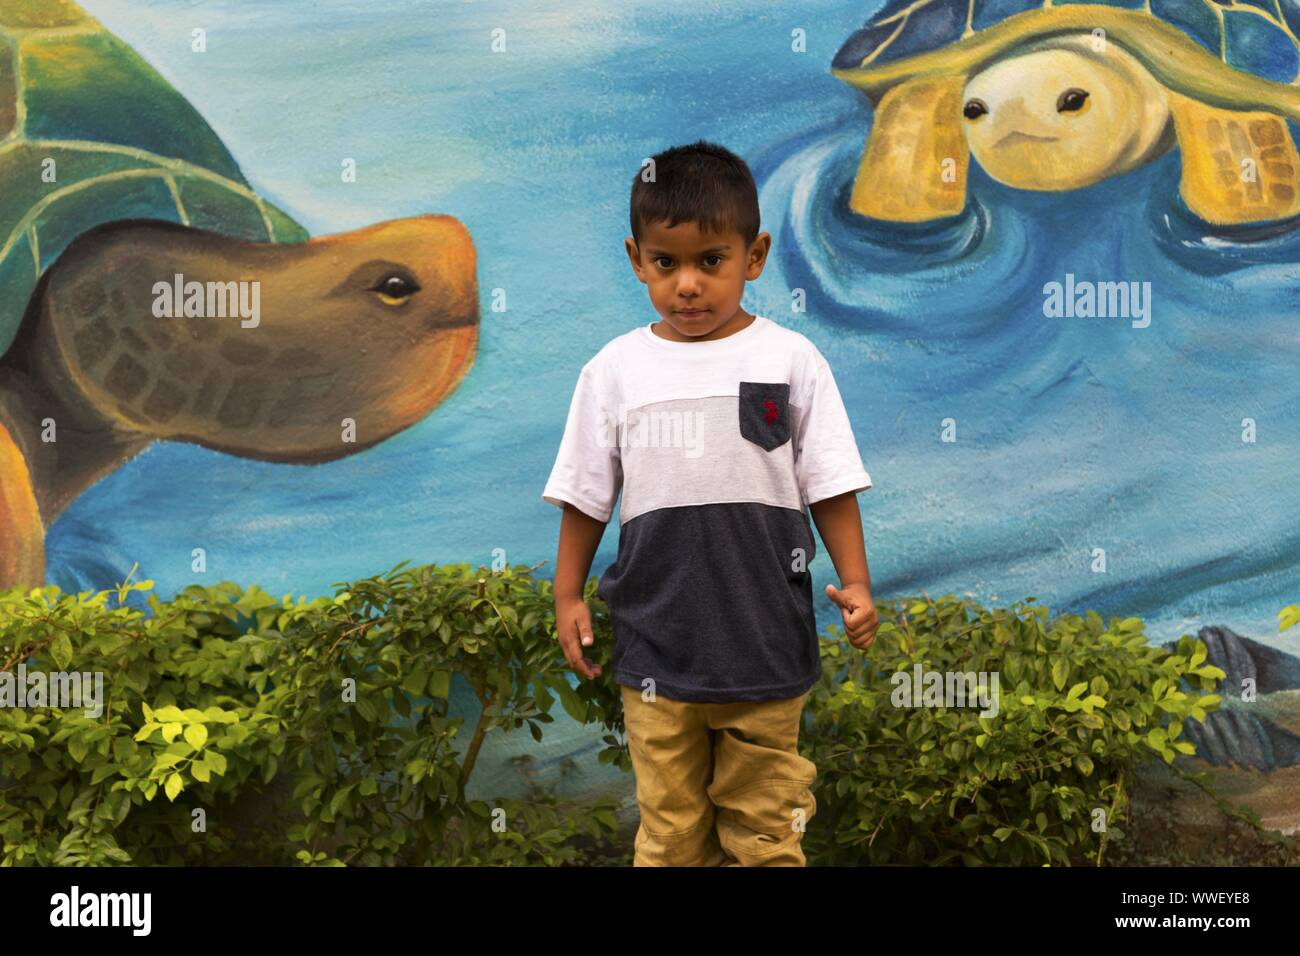 Young Male Child standing against the blue wall painted with Turtle Images in Rio Dulce Village, Guatemala Stock Photo